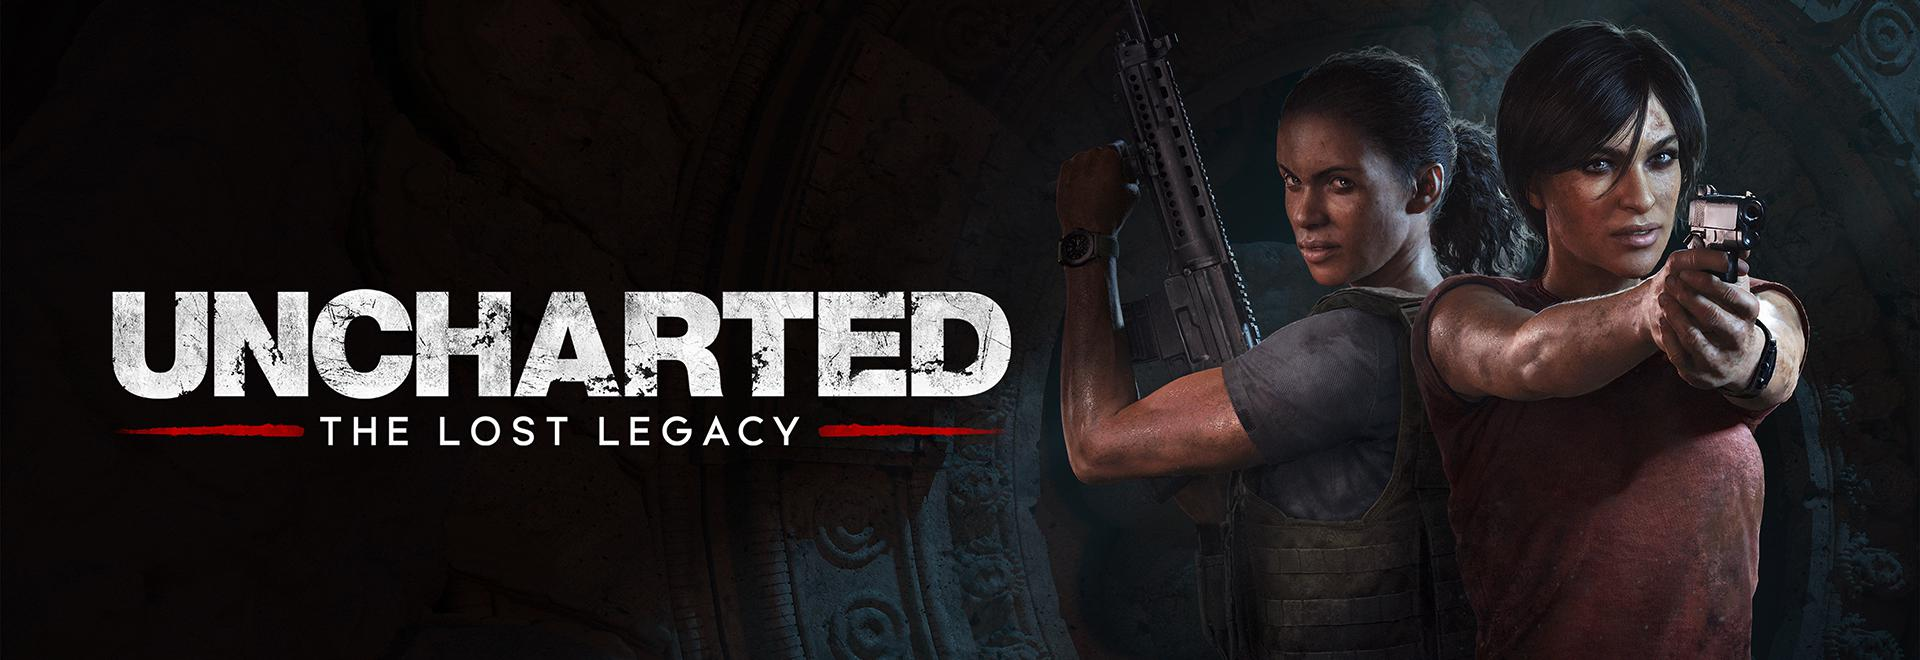 Uncharted: The Lost Legacy Feature Image